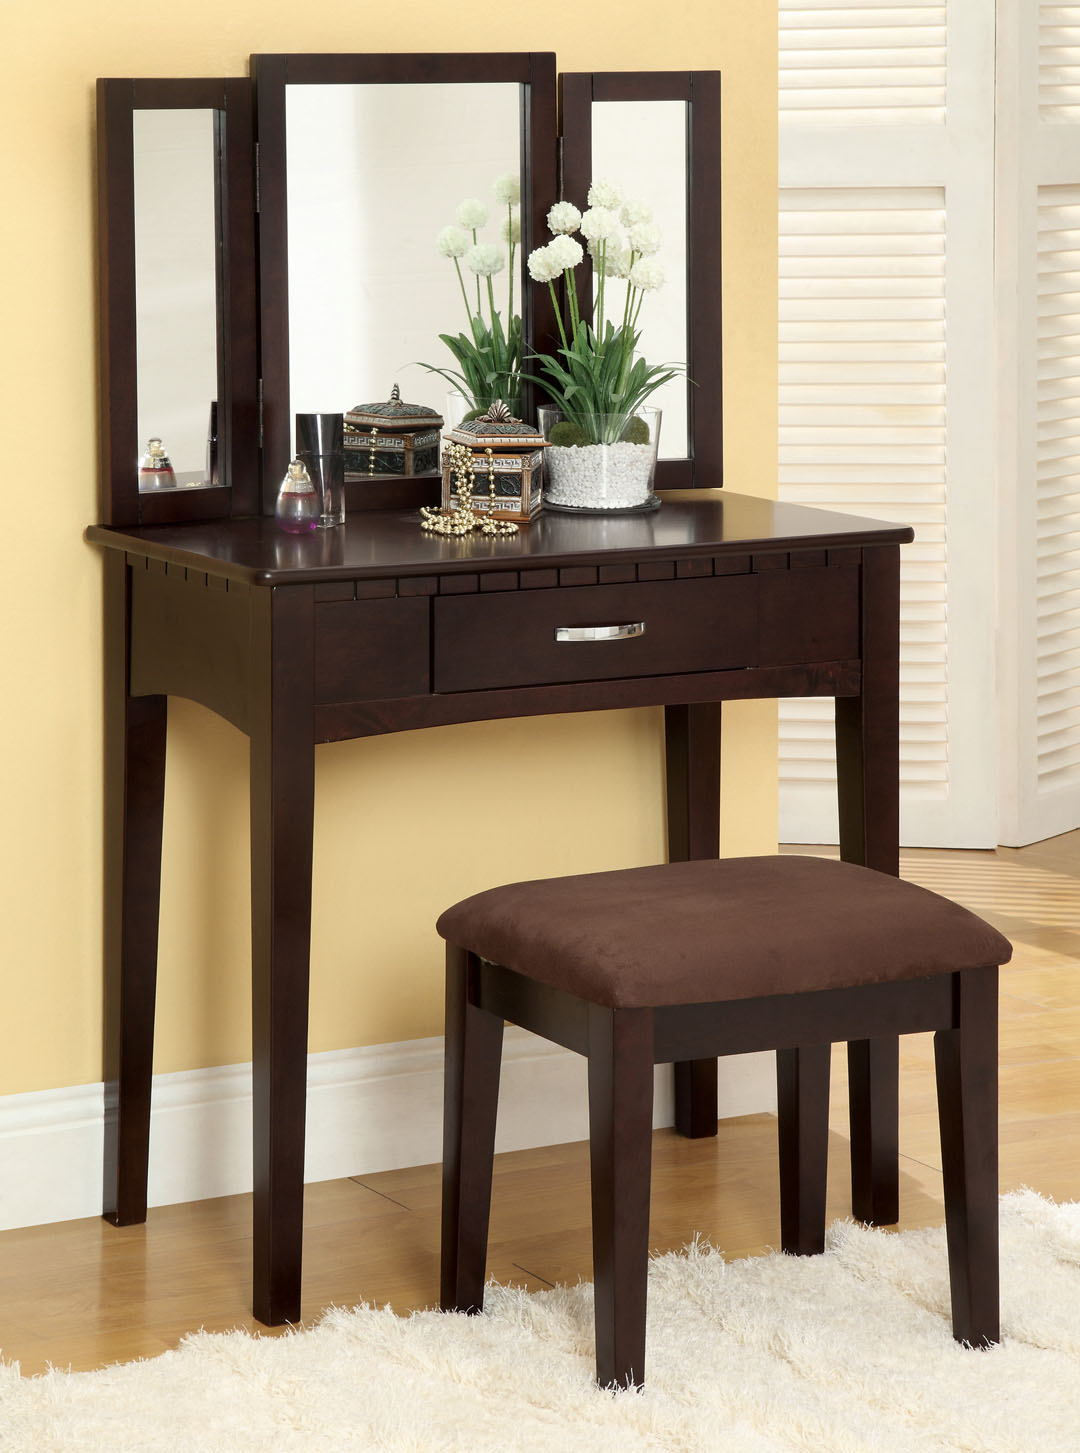 CM-DK6490EXP 3 pc potterville espresso finish wood bedroom make up vanity sitting table set with tri fold mirror